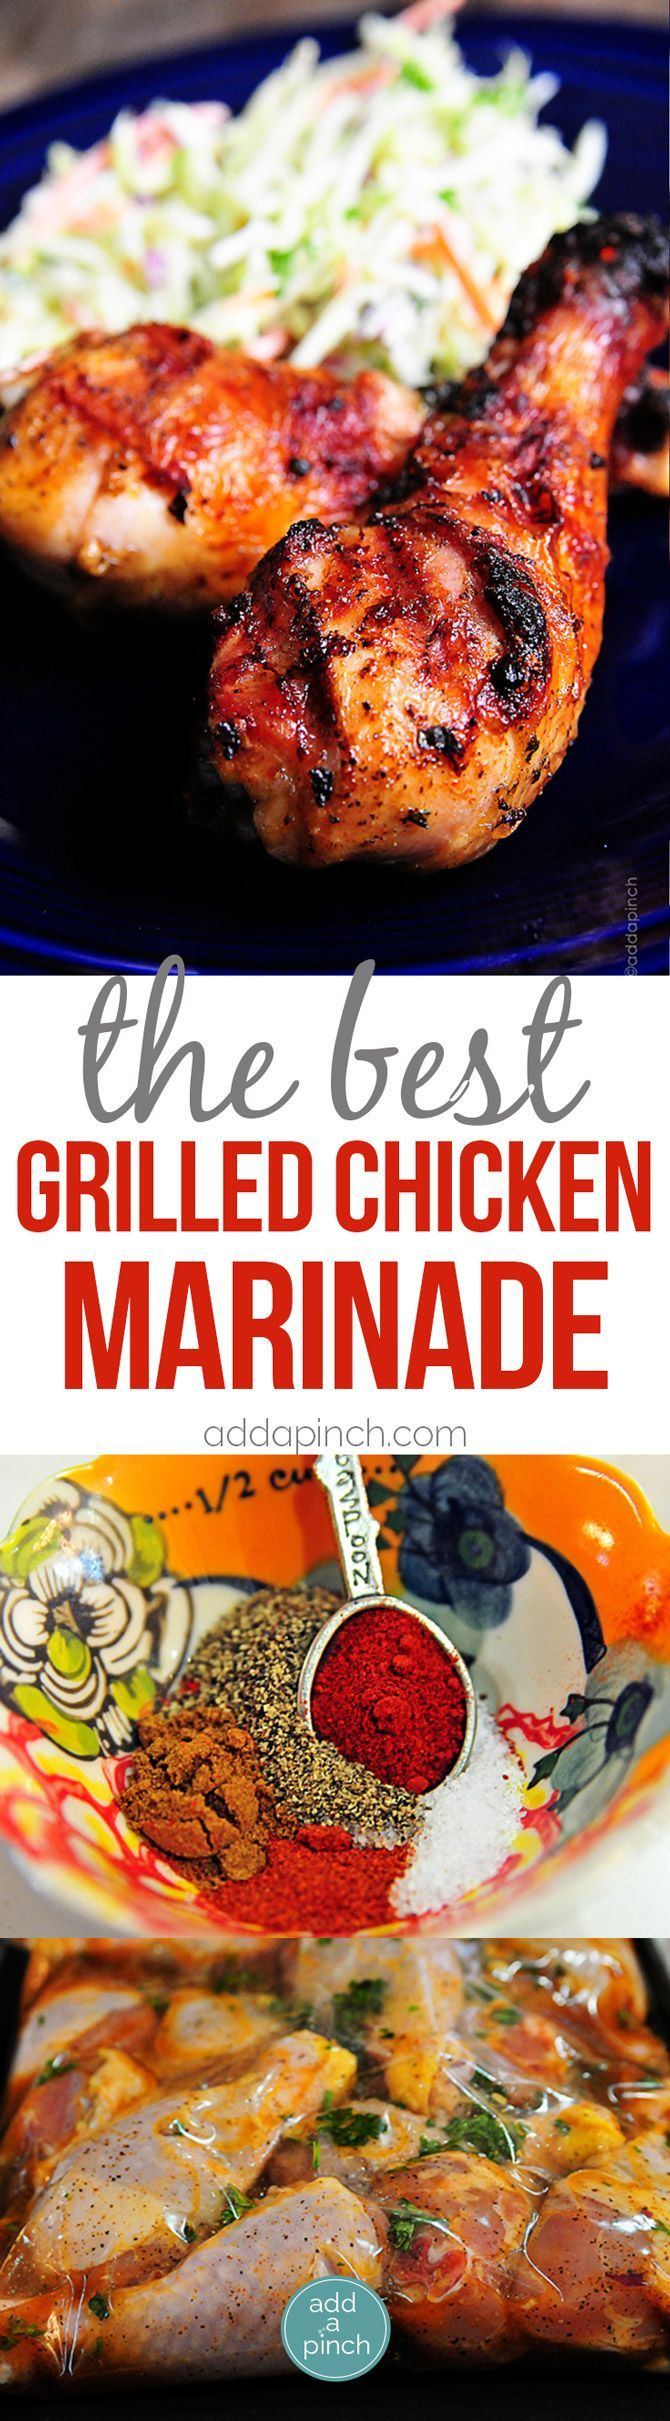 Best Grilled Chicken Marinade Recipe - Grilled Chicken recipes are always a crowd-pleaser. This easy grilled chicken marinade recipe will become a favorite! // http://addapinch.com